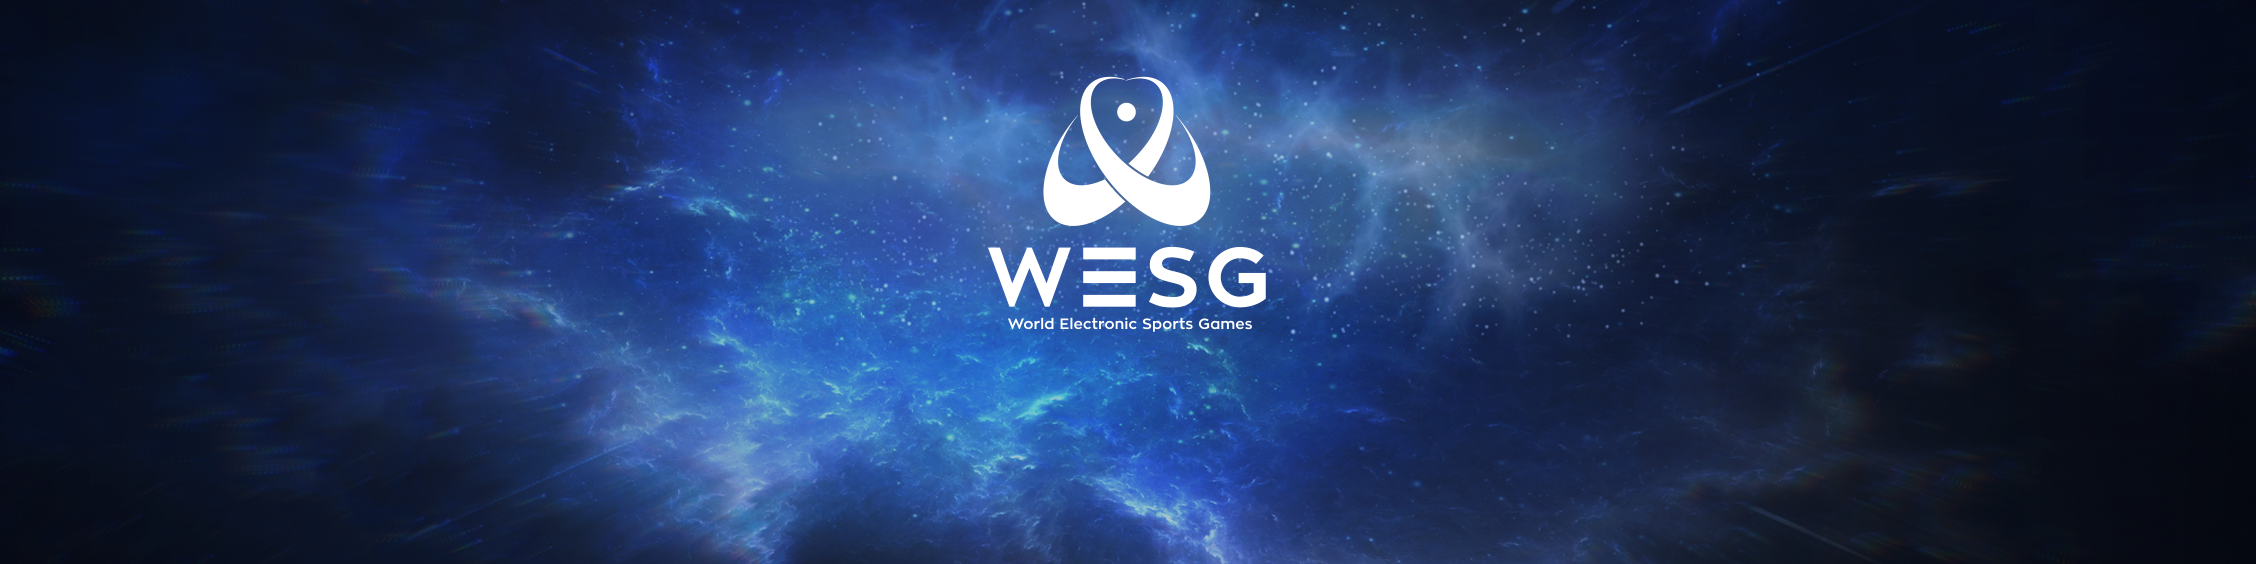 WESG 2018-2019 Ukraine Qualifiers